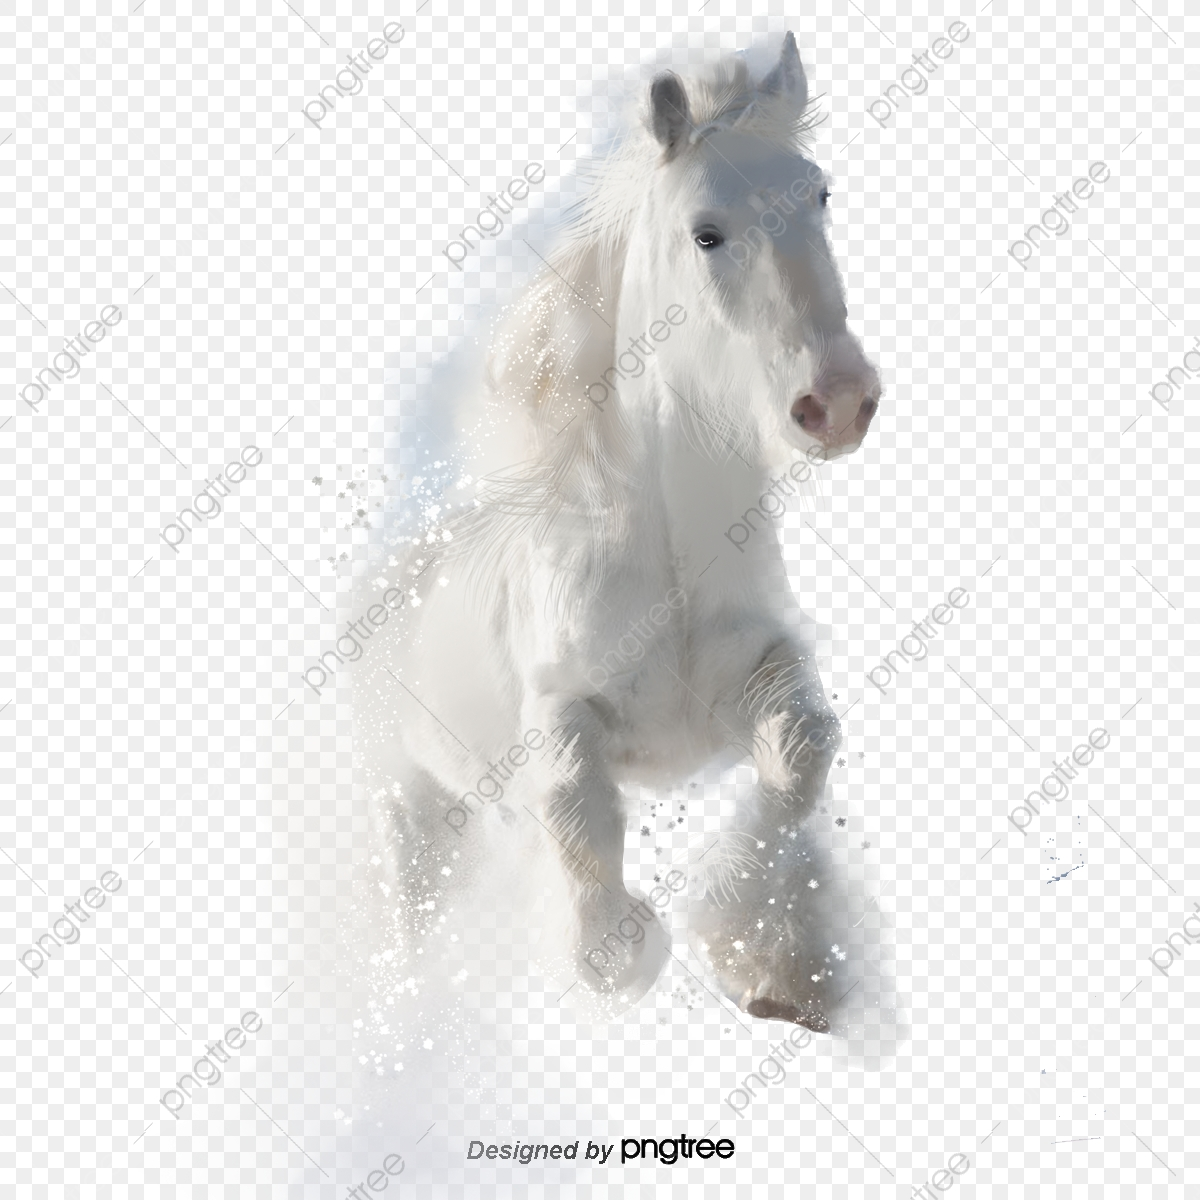 Horse Png Images Vector And Psd Files Free Download On Pngtree